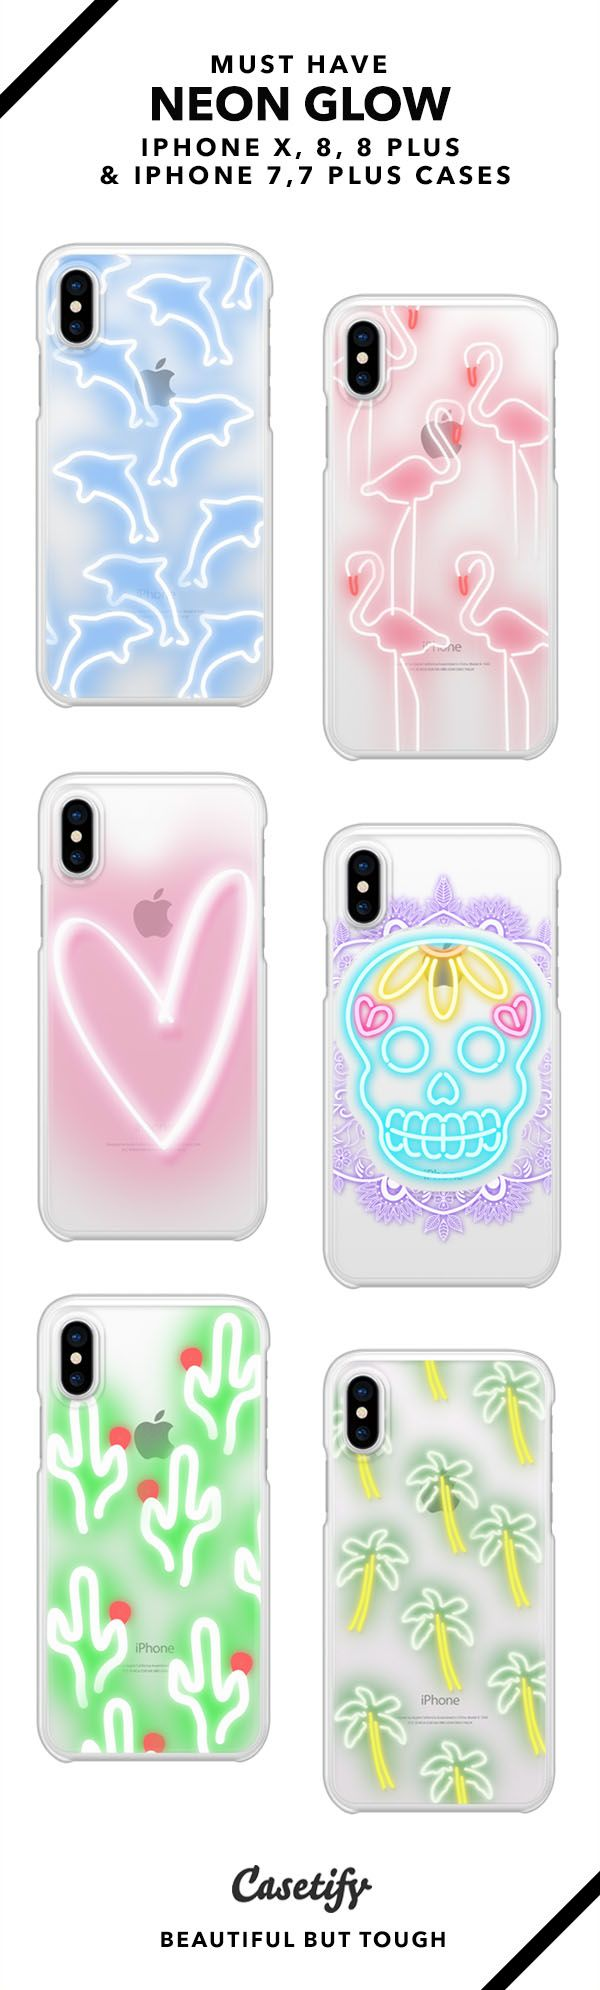 iphone 8 case neon